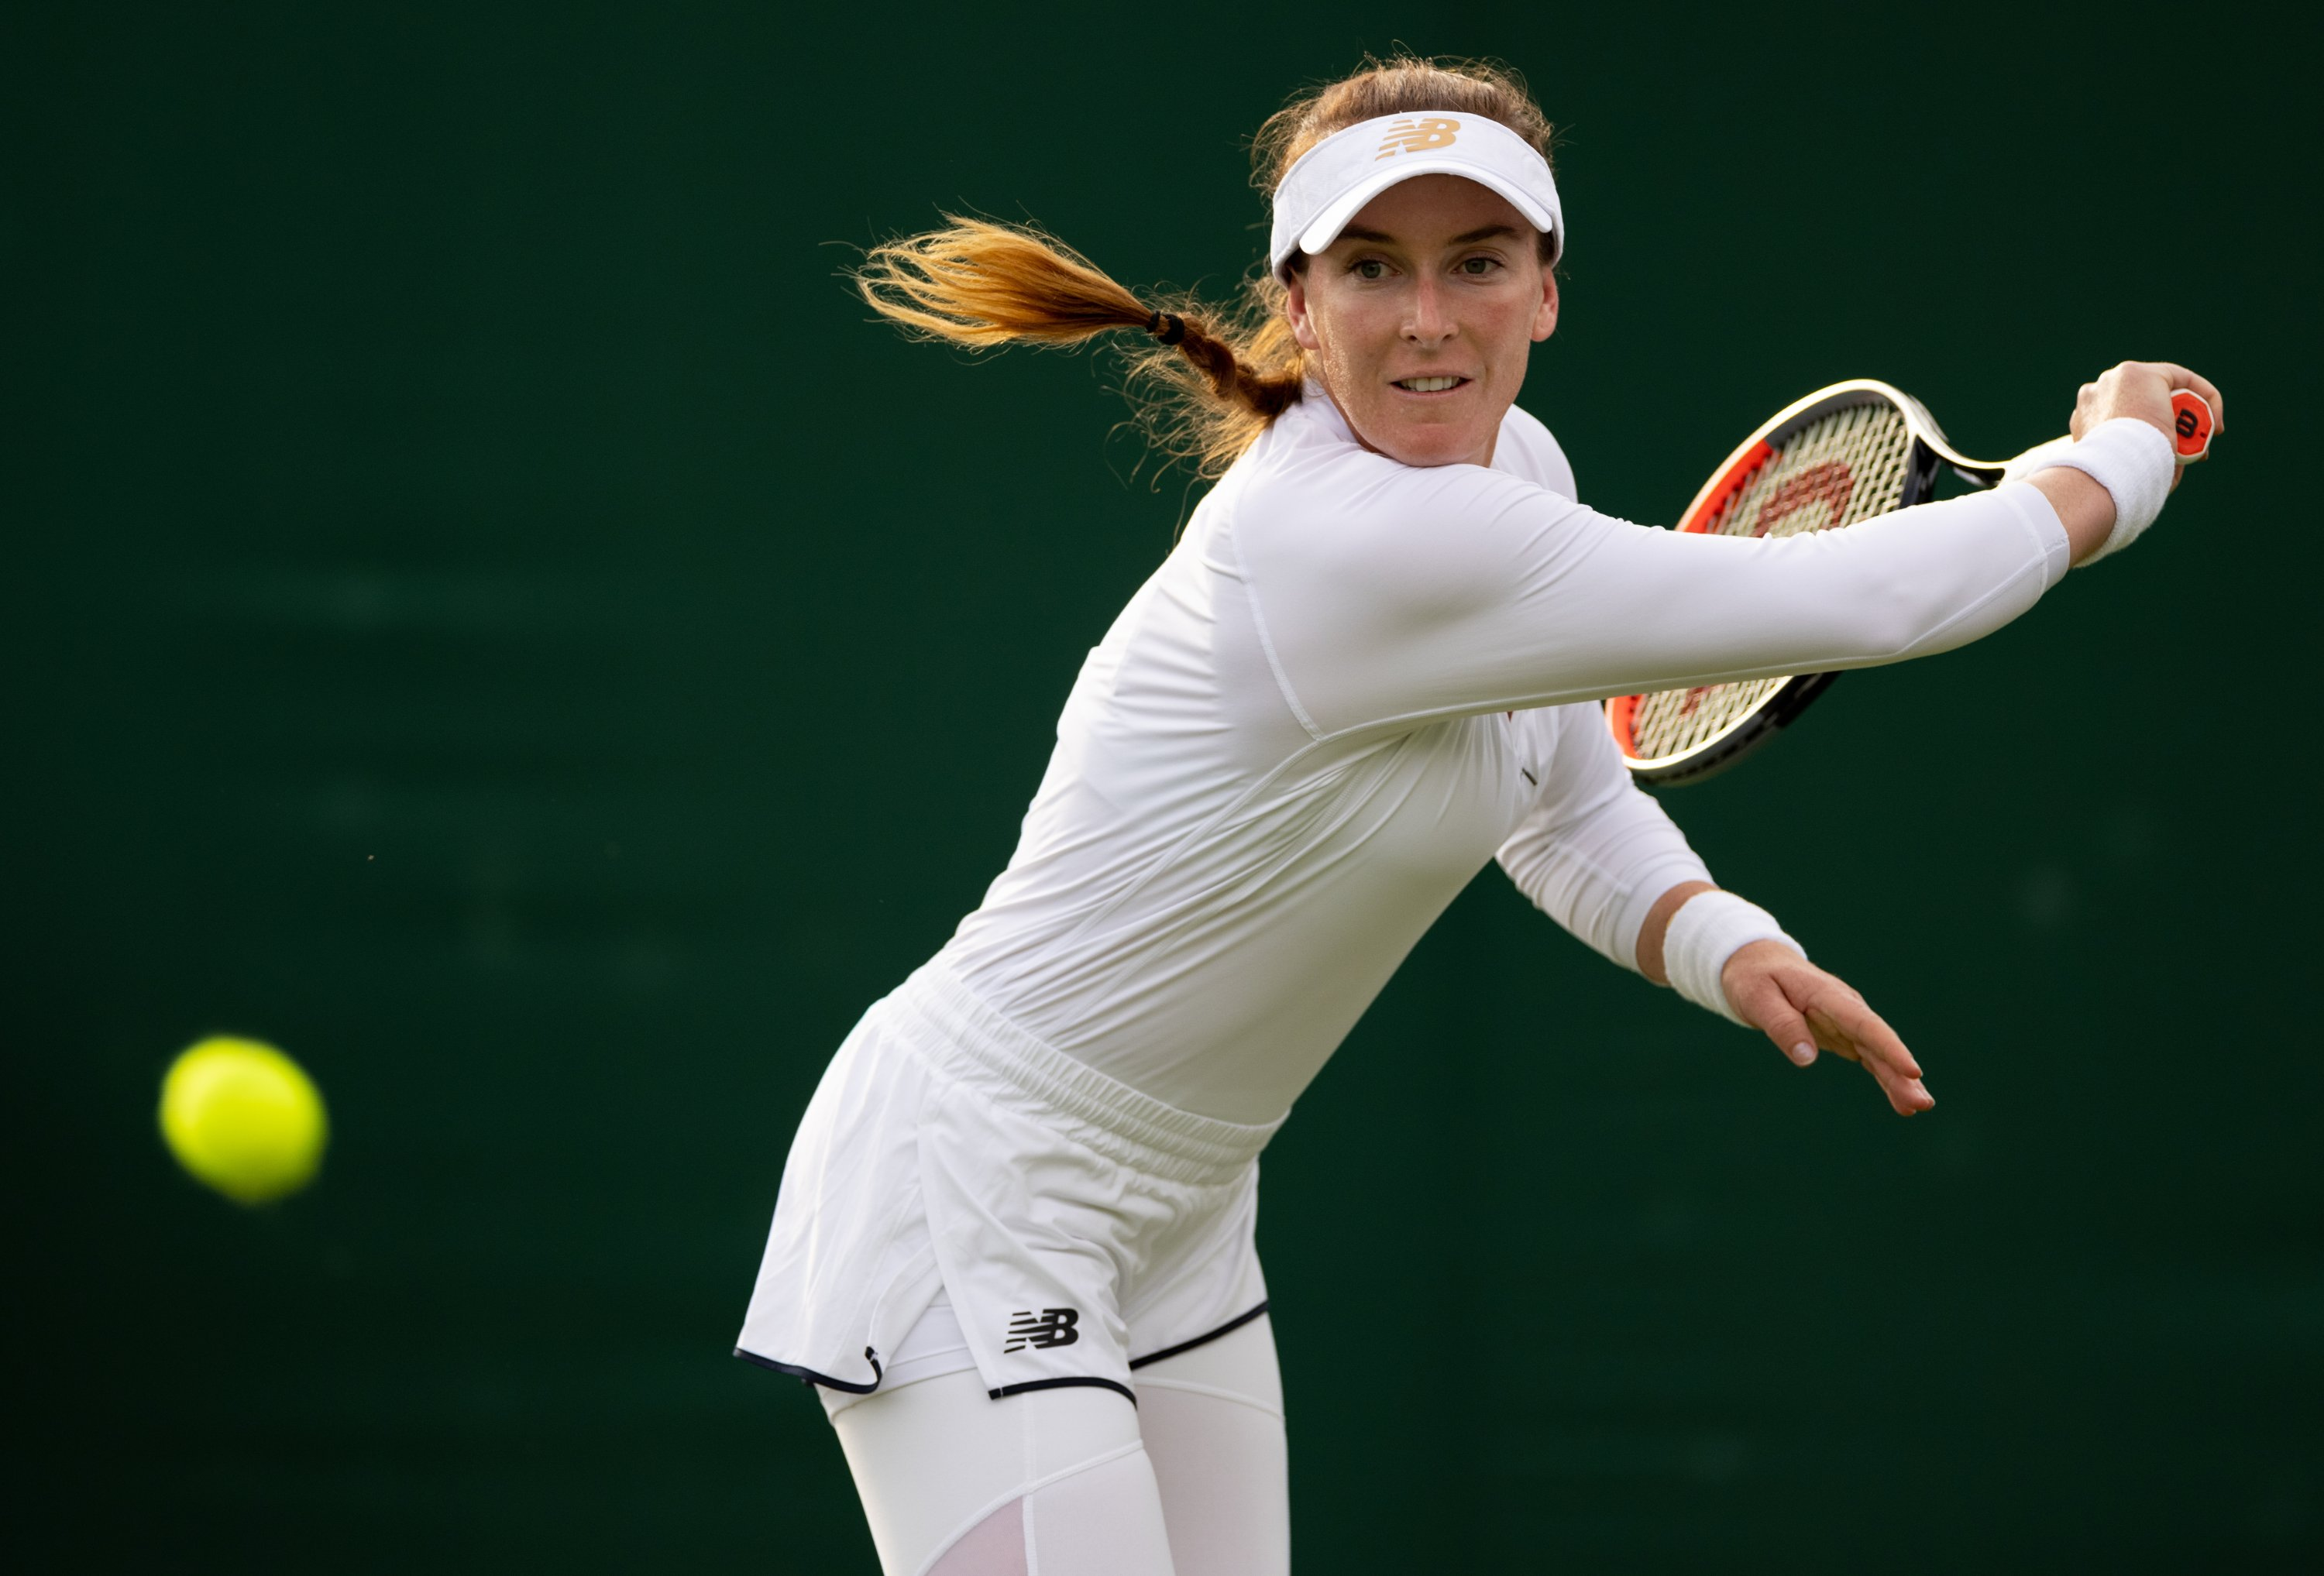 U.S.' Madison Brengle in action during her 2021 Wimbledon women's singles match against compatriot Sofia Kenin at The All England Tennis Club in Wimbledon, southwest London, England, June 30, 2021. (AFP Photo)